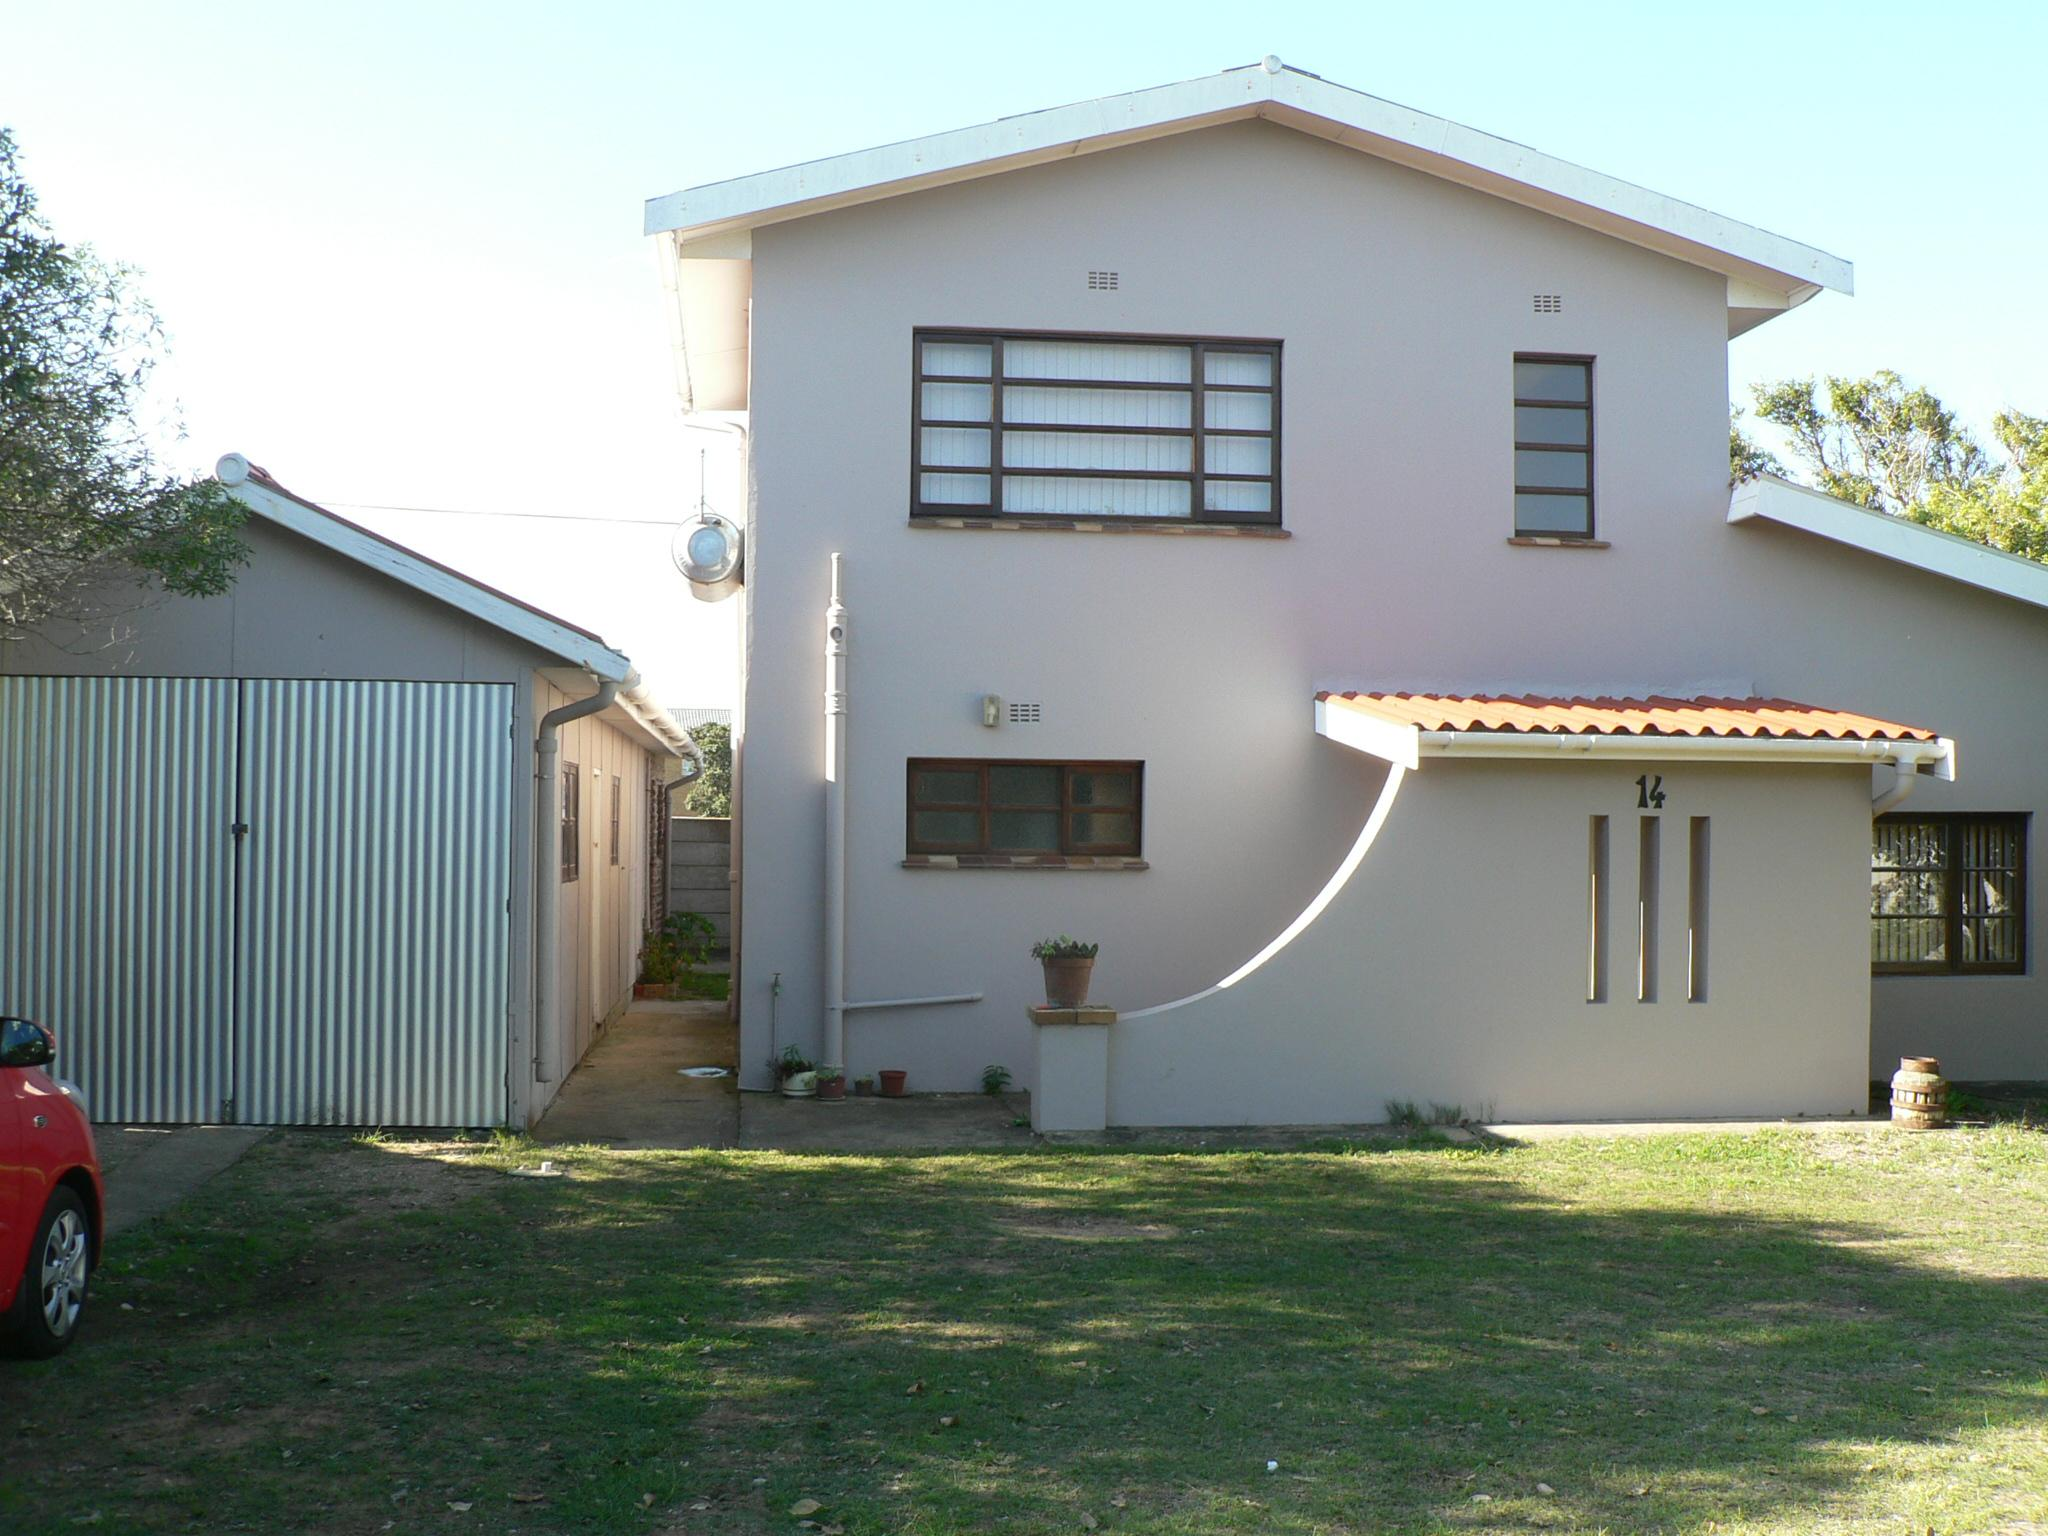 3 Bedroom House for Sale For Sale in Stilbaai (Still Bay) - Private Sale - MR142412